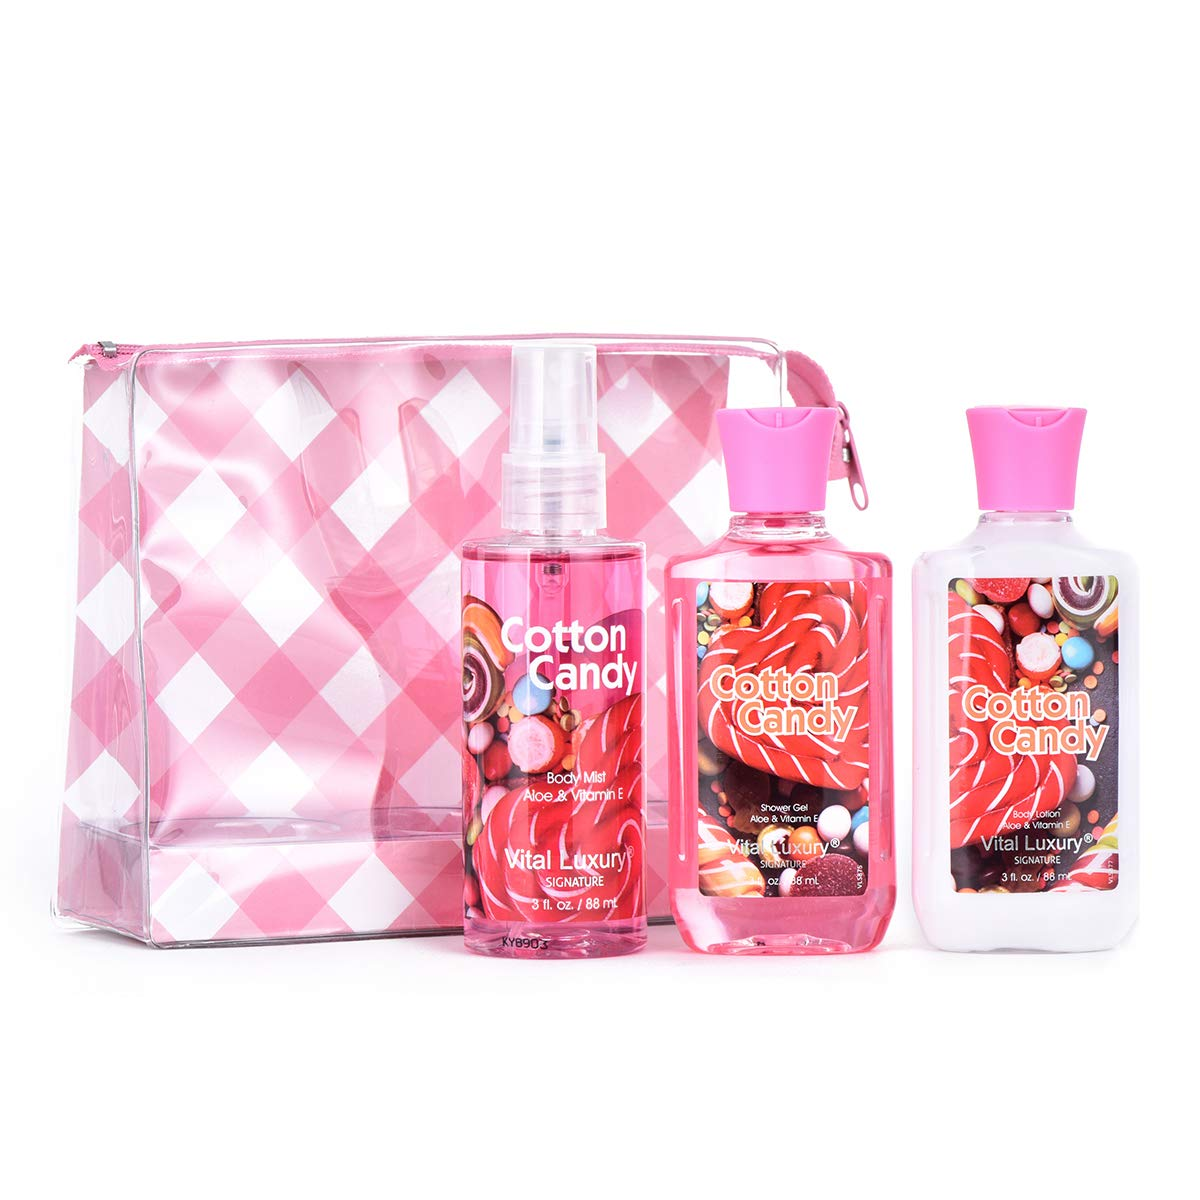 Vital Luxury Bath & Body Care Travel Set - Home Spa Set with Body Lotion, Shower Gel and Fragrance Mist (Cotton Candy)